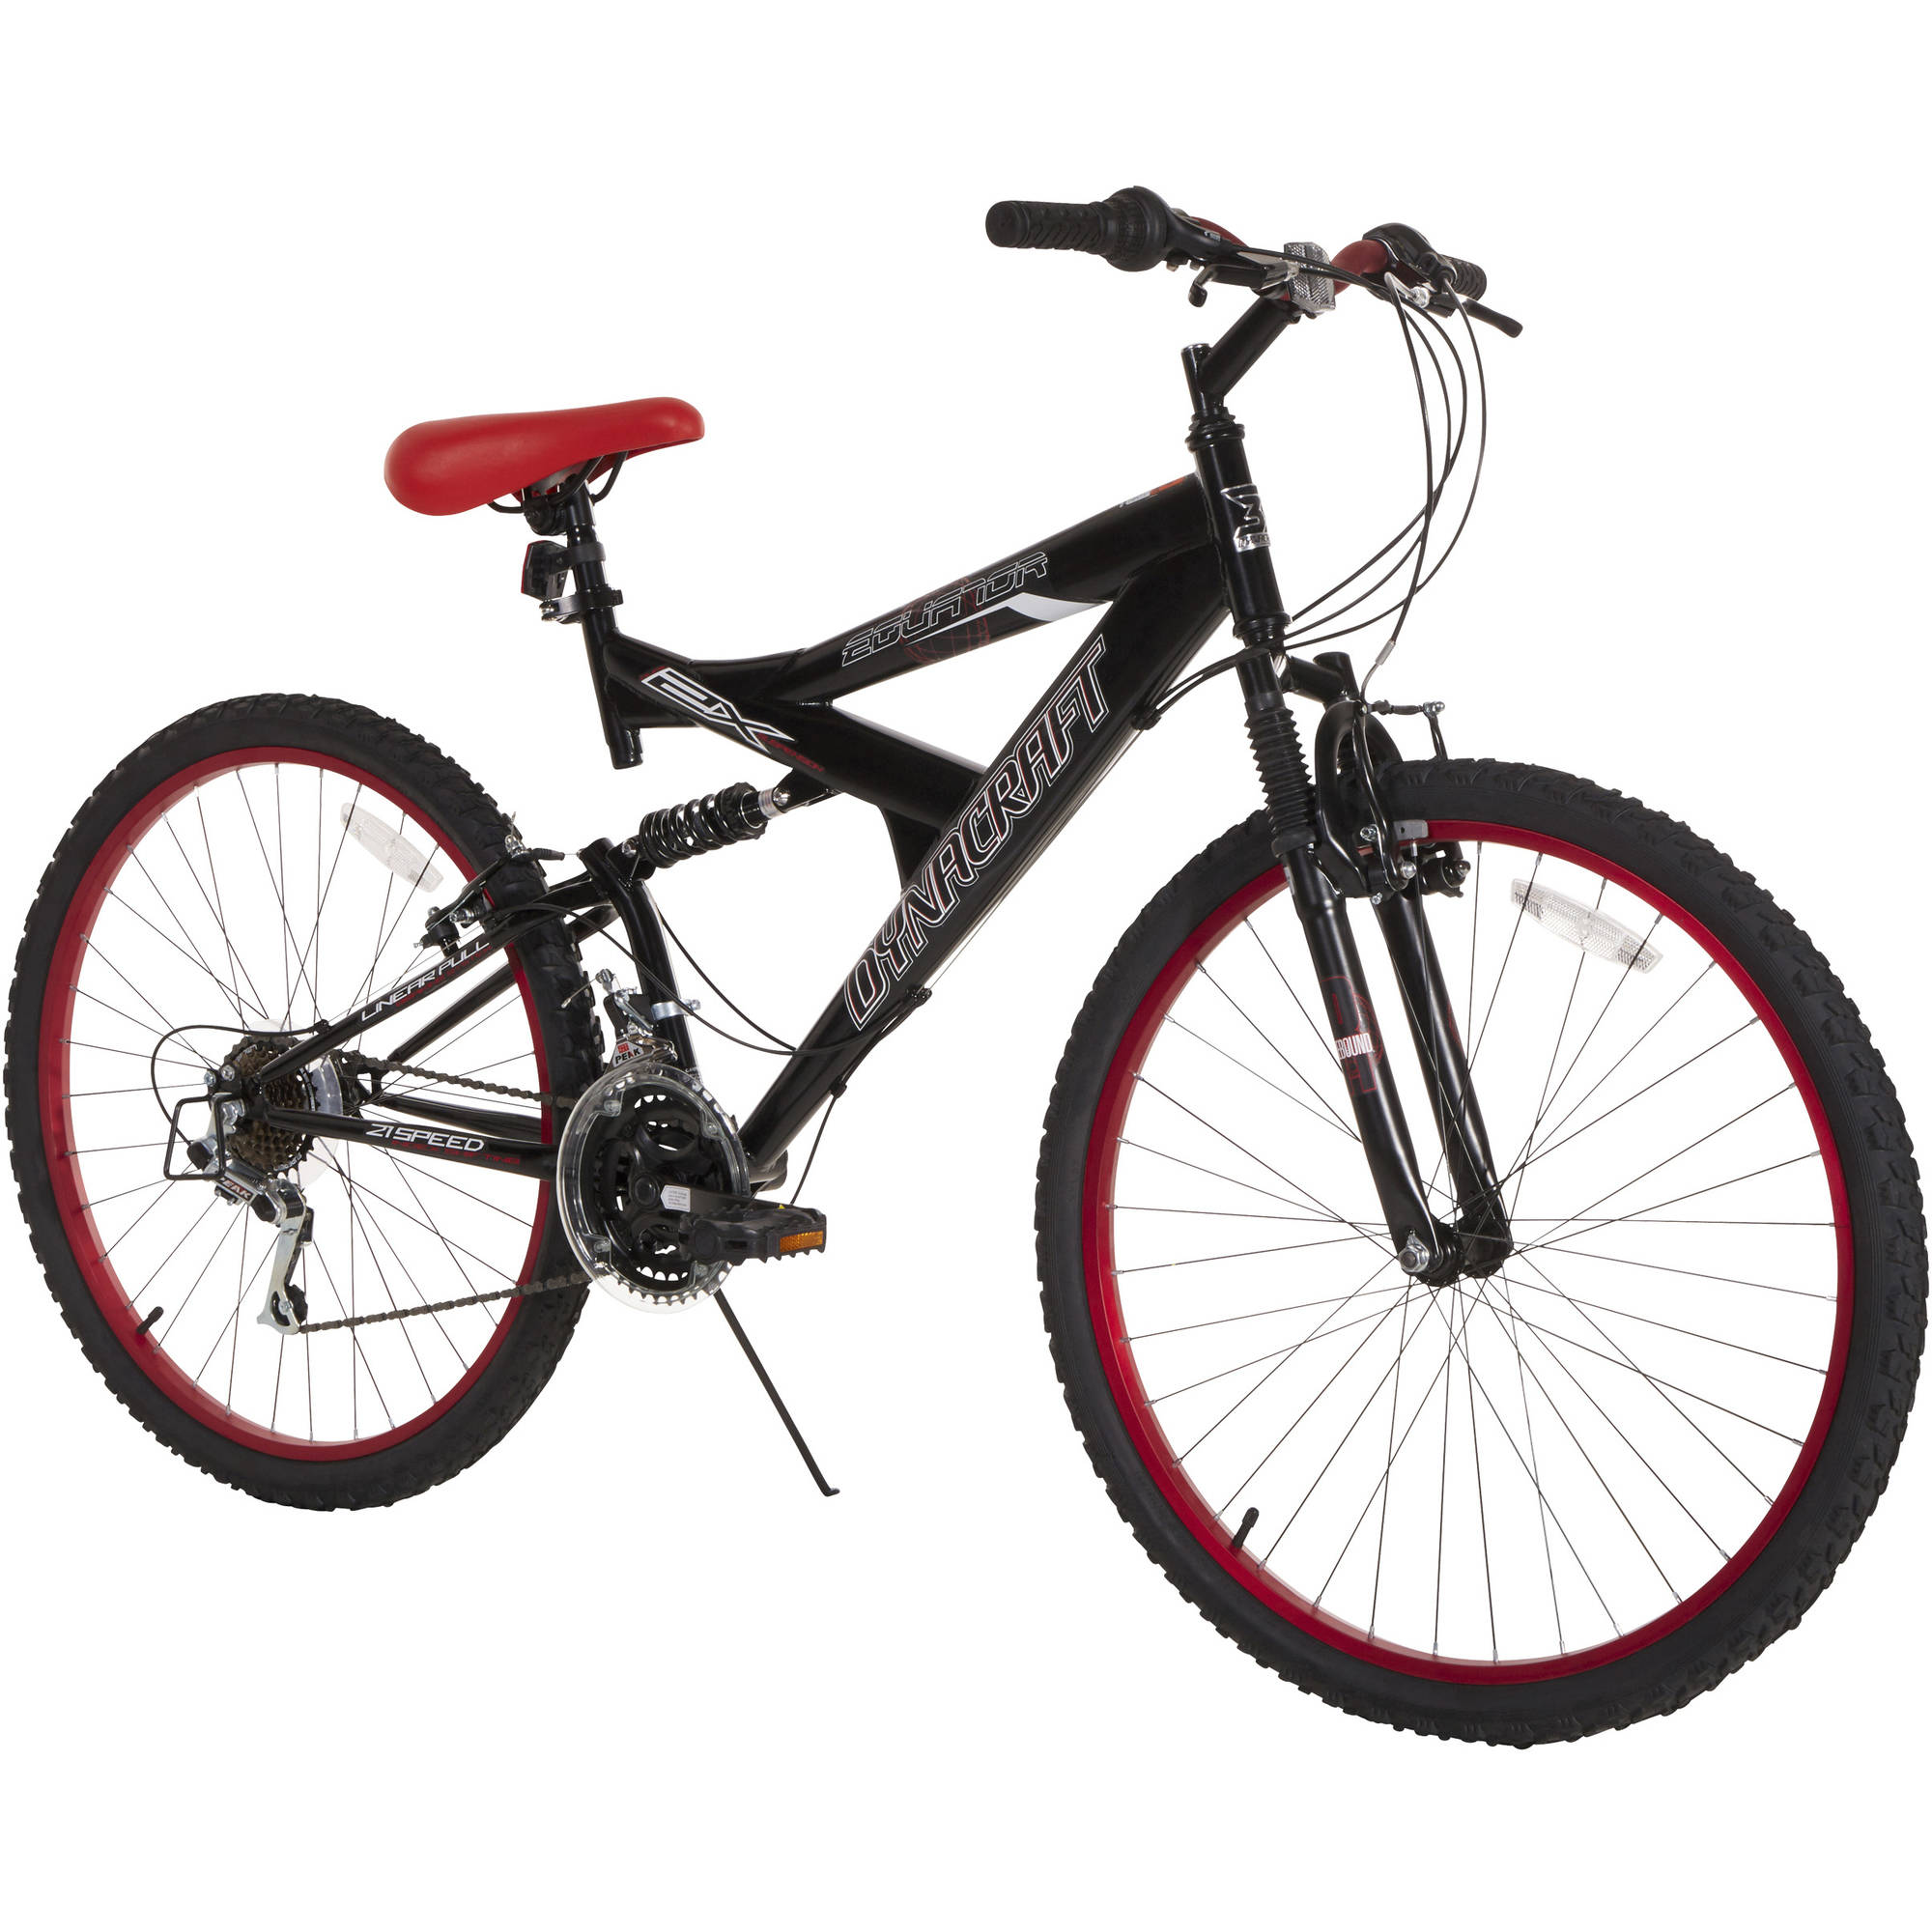 "26"" Dynacraft Equator Men's Mountain Bike"